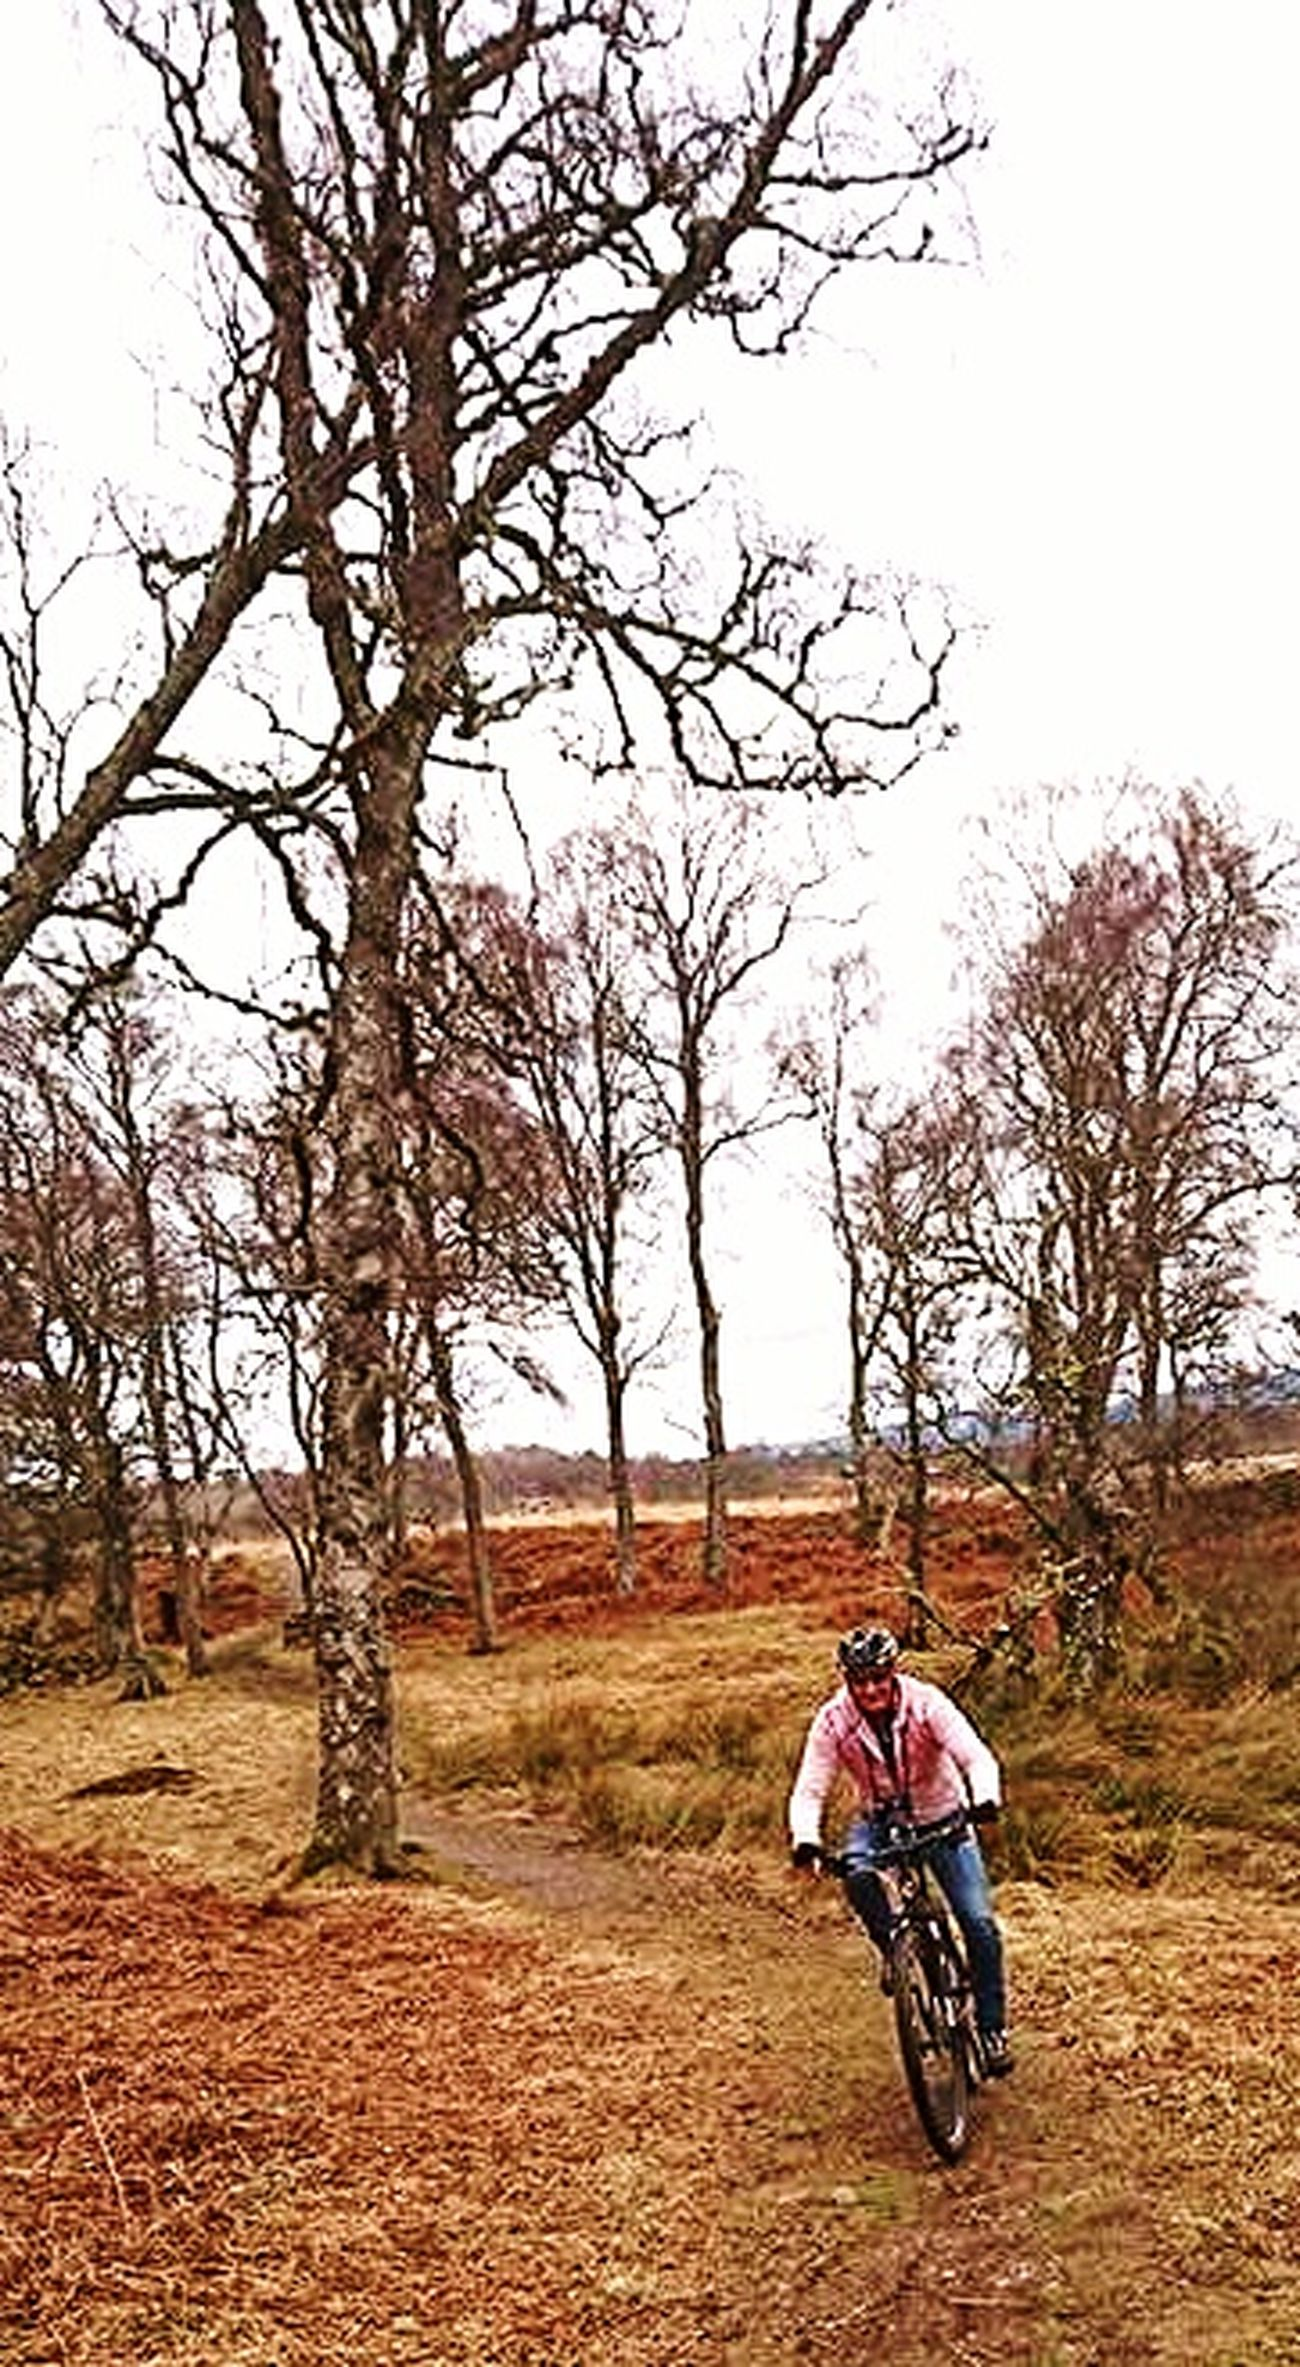 Enjoying the country side, Scotland, UK. Excercising